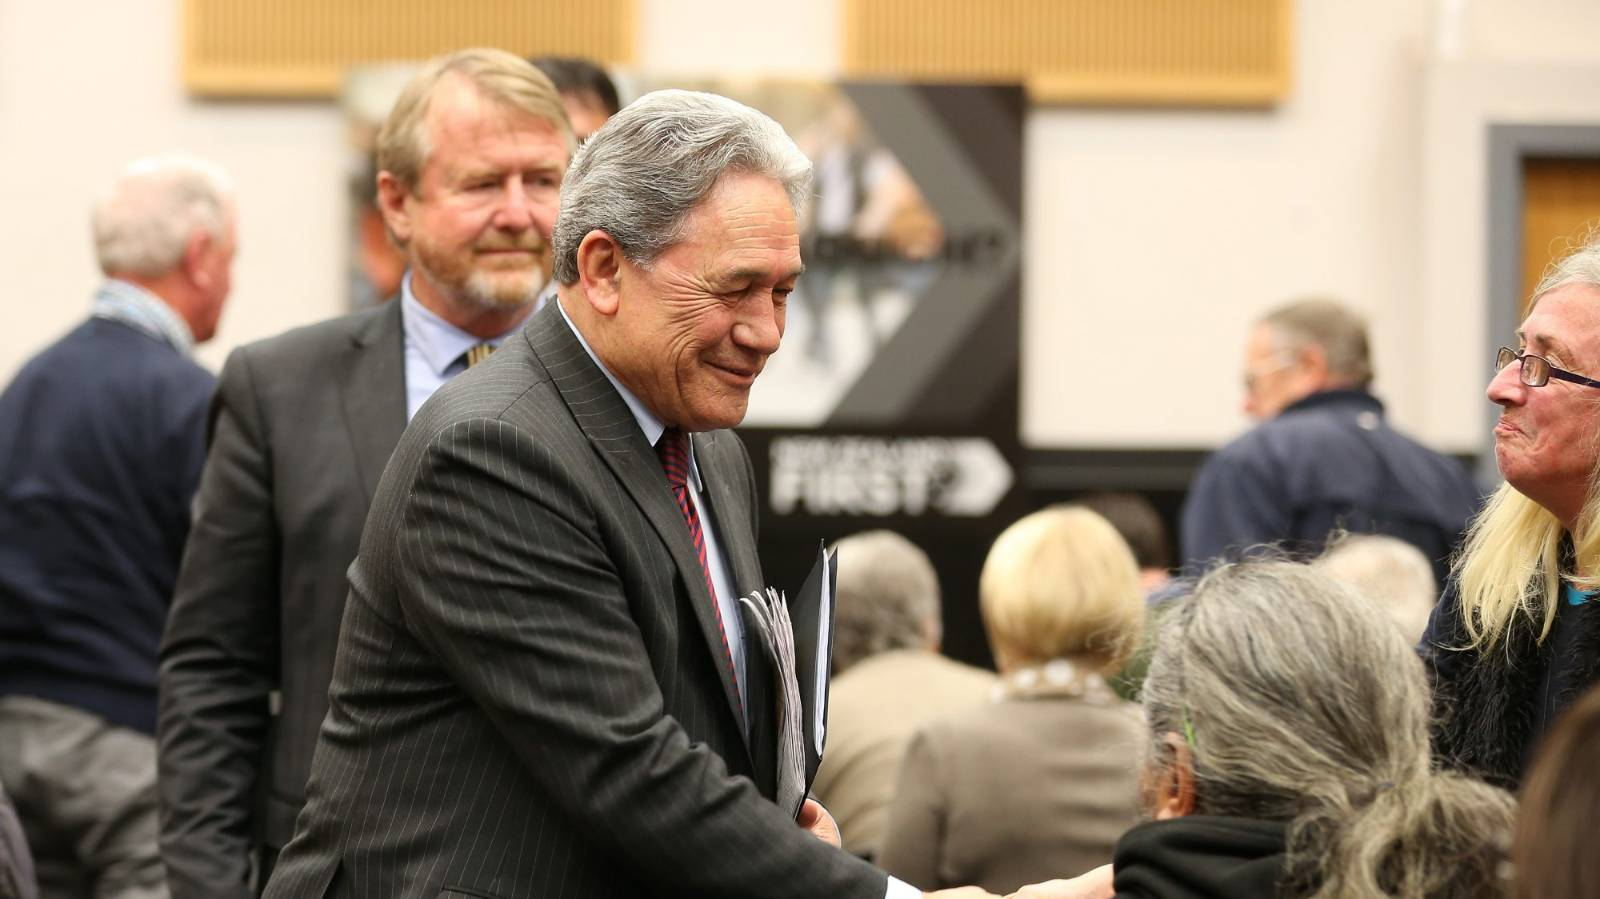 Winston Peters takes medical leave for surgery